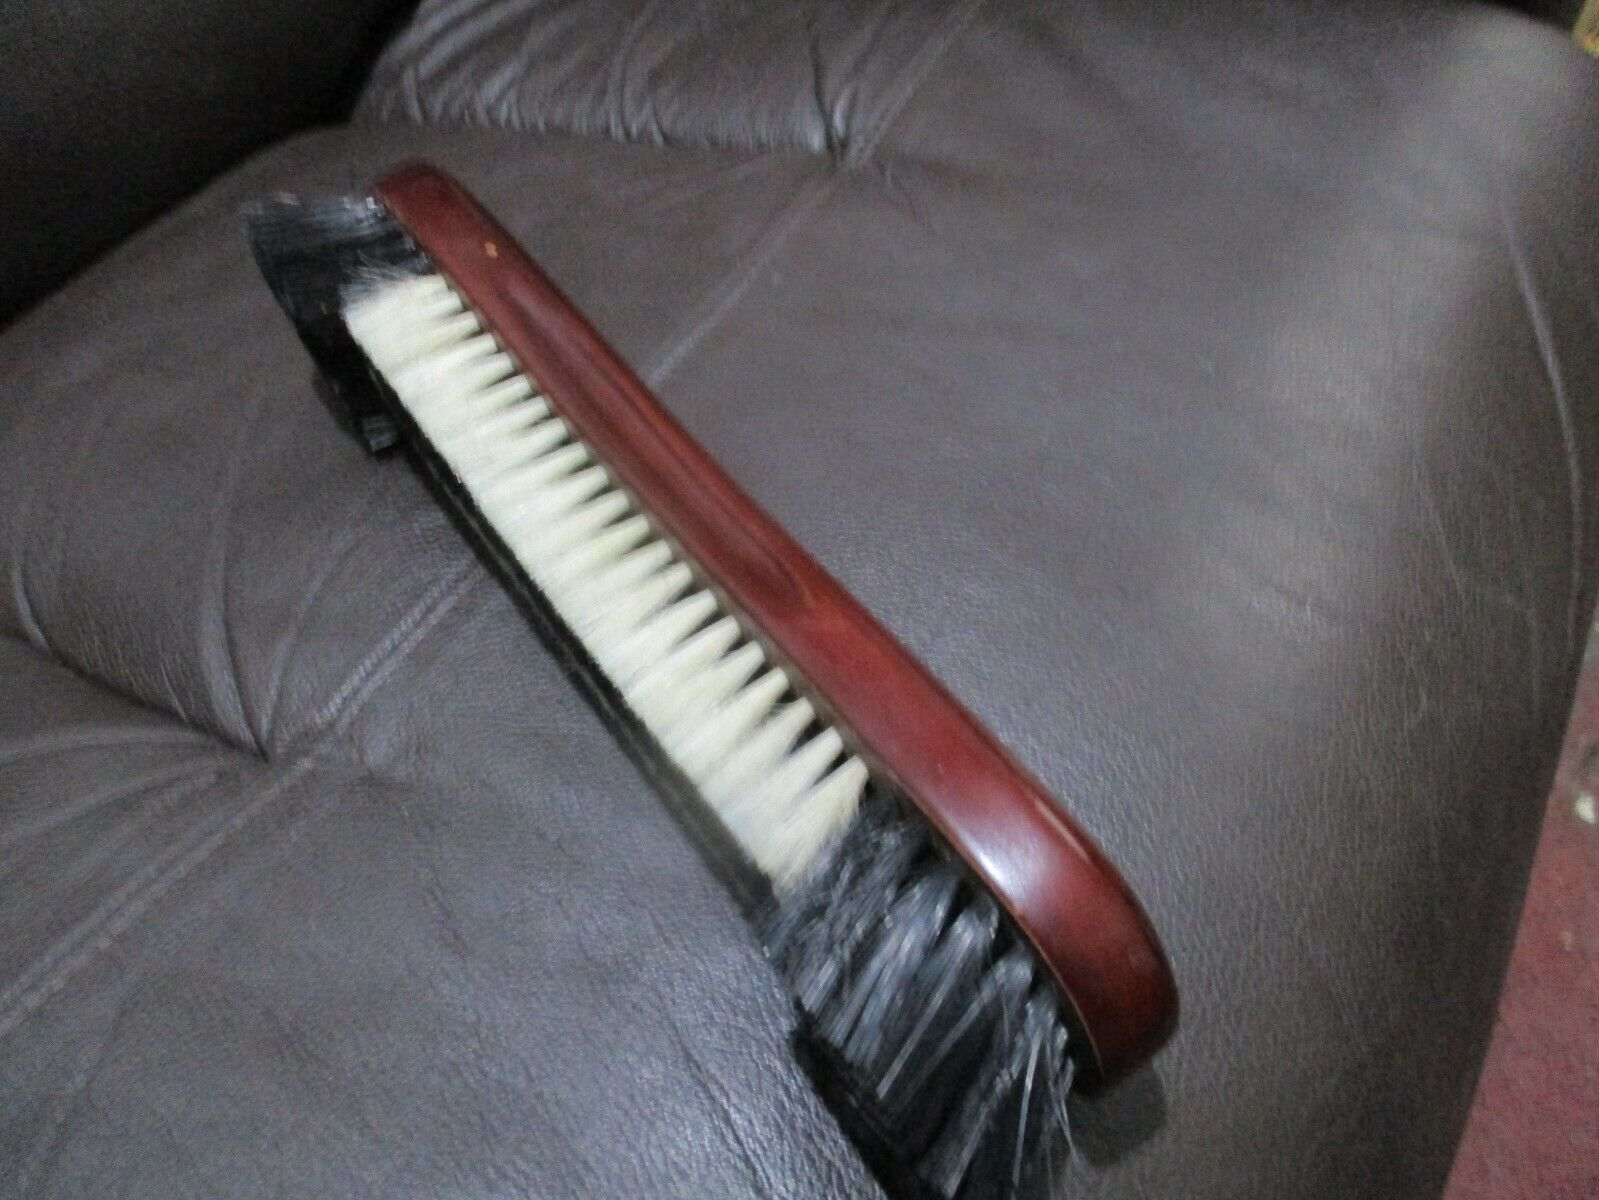 DELUX   12  INCH  MAHOGANY SNOOKER /POOL     TABLE  BRUSH   USED GOOD  CONDITION